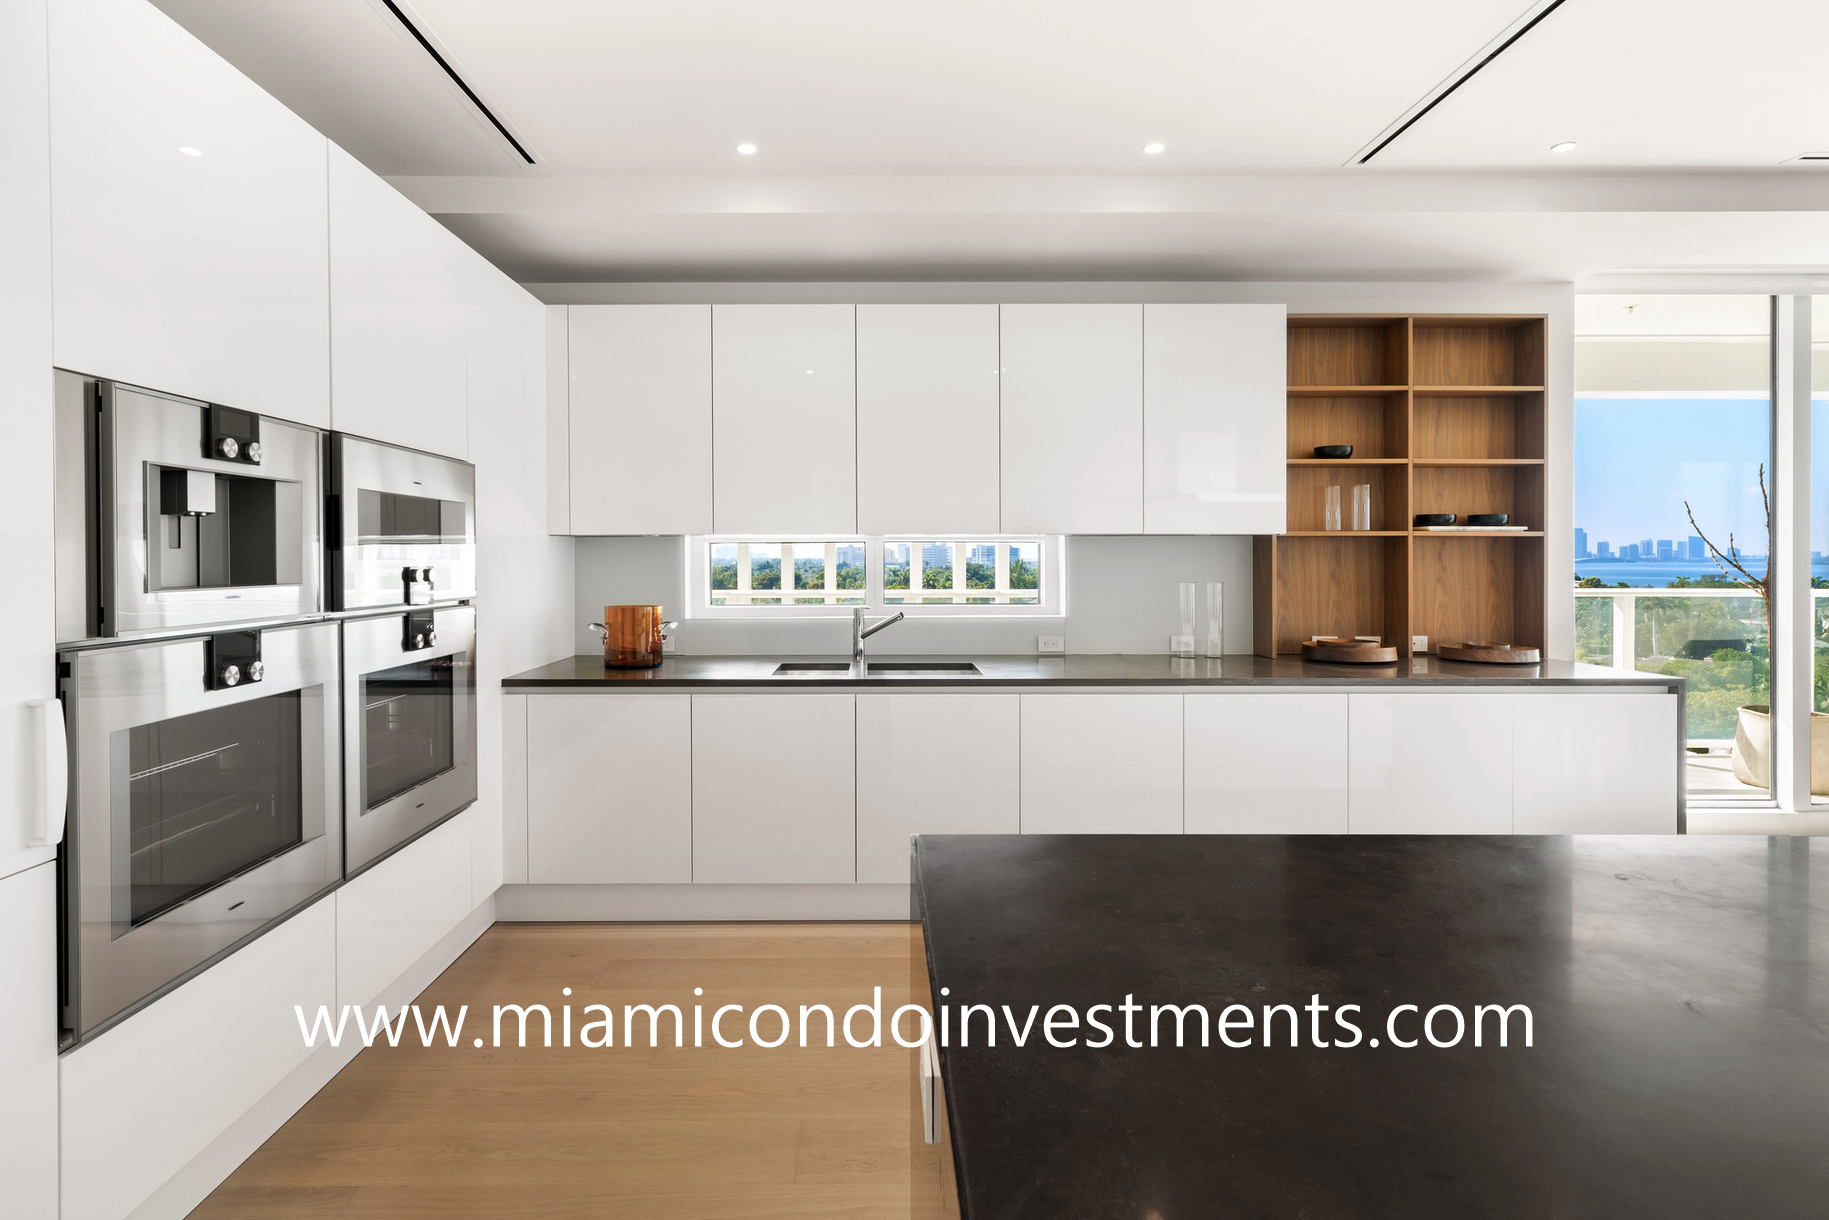 Boffi kitchen at The Ritz-Carlton Residences Miami Beach